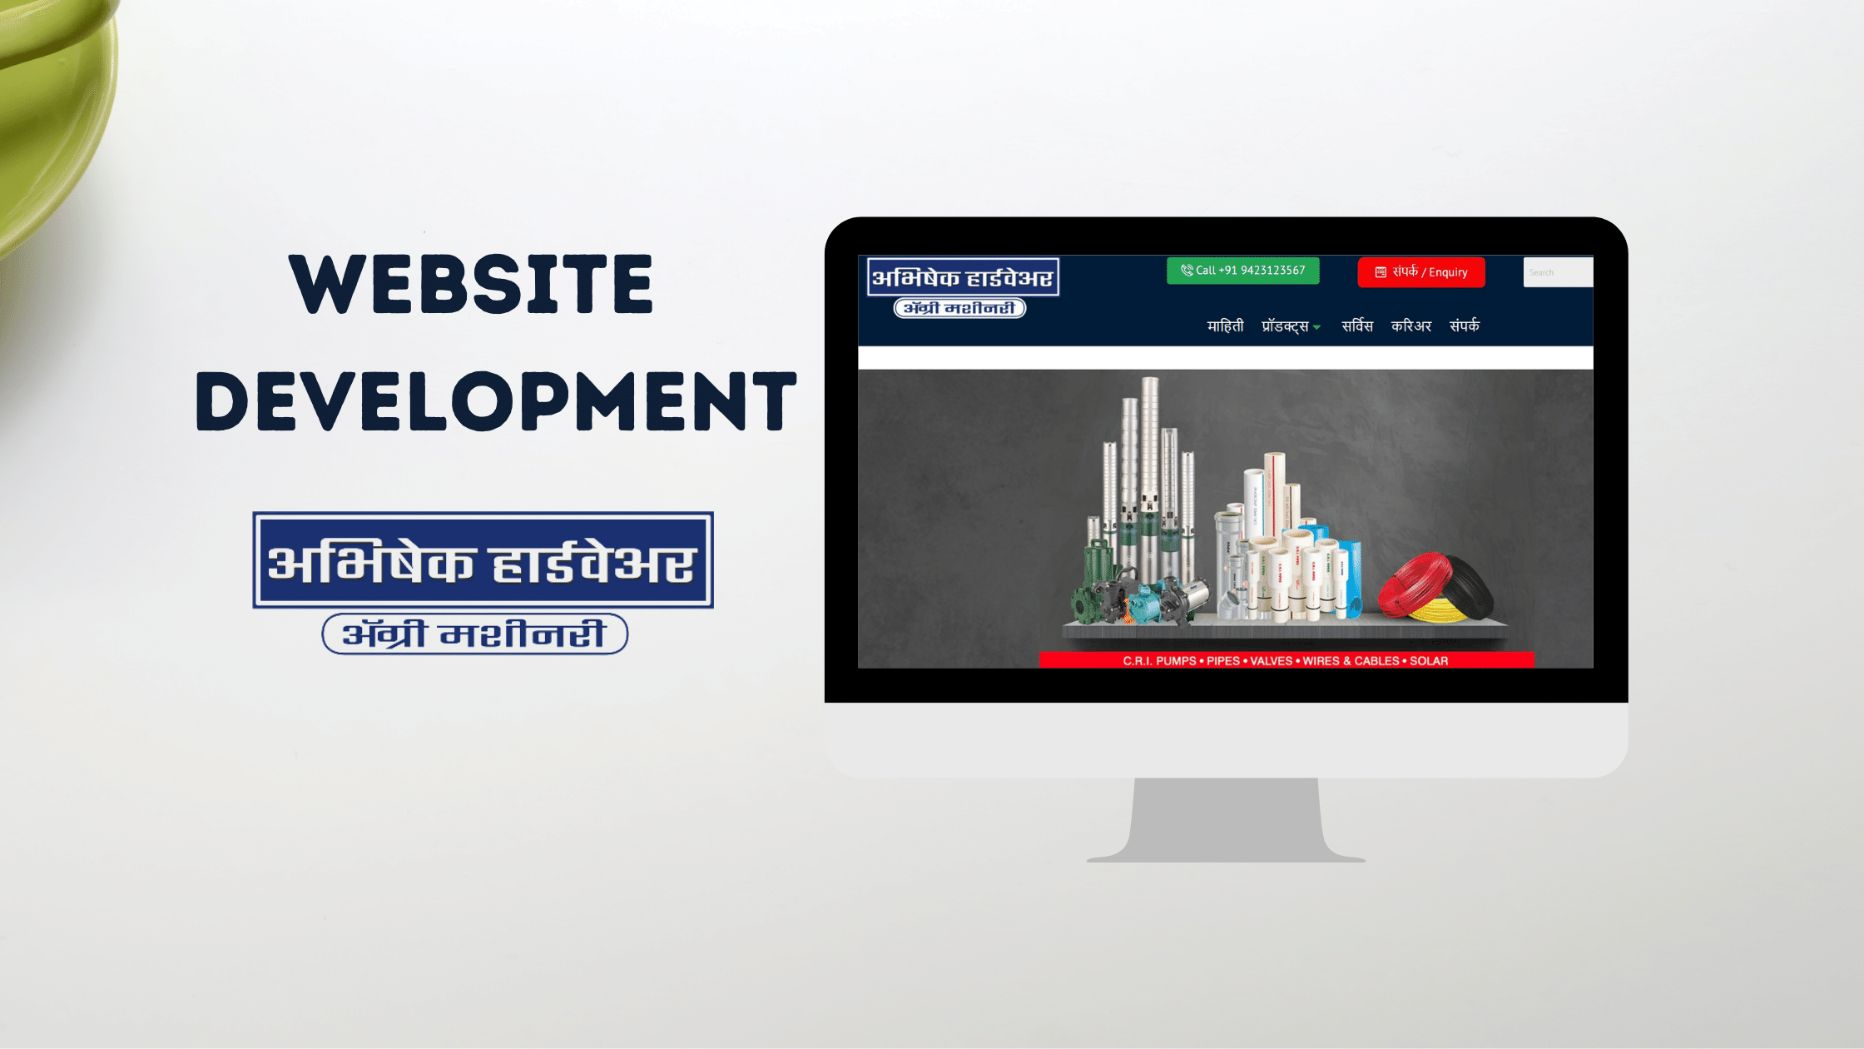 Abhishek hardware website development featured image